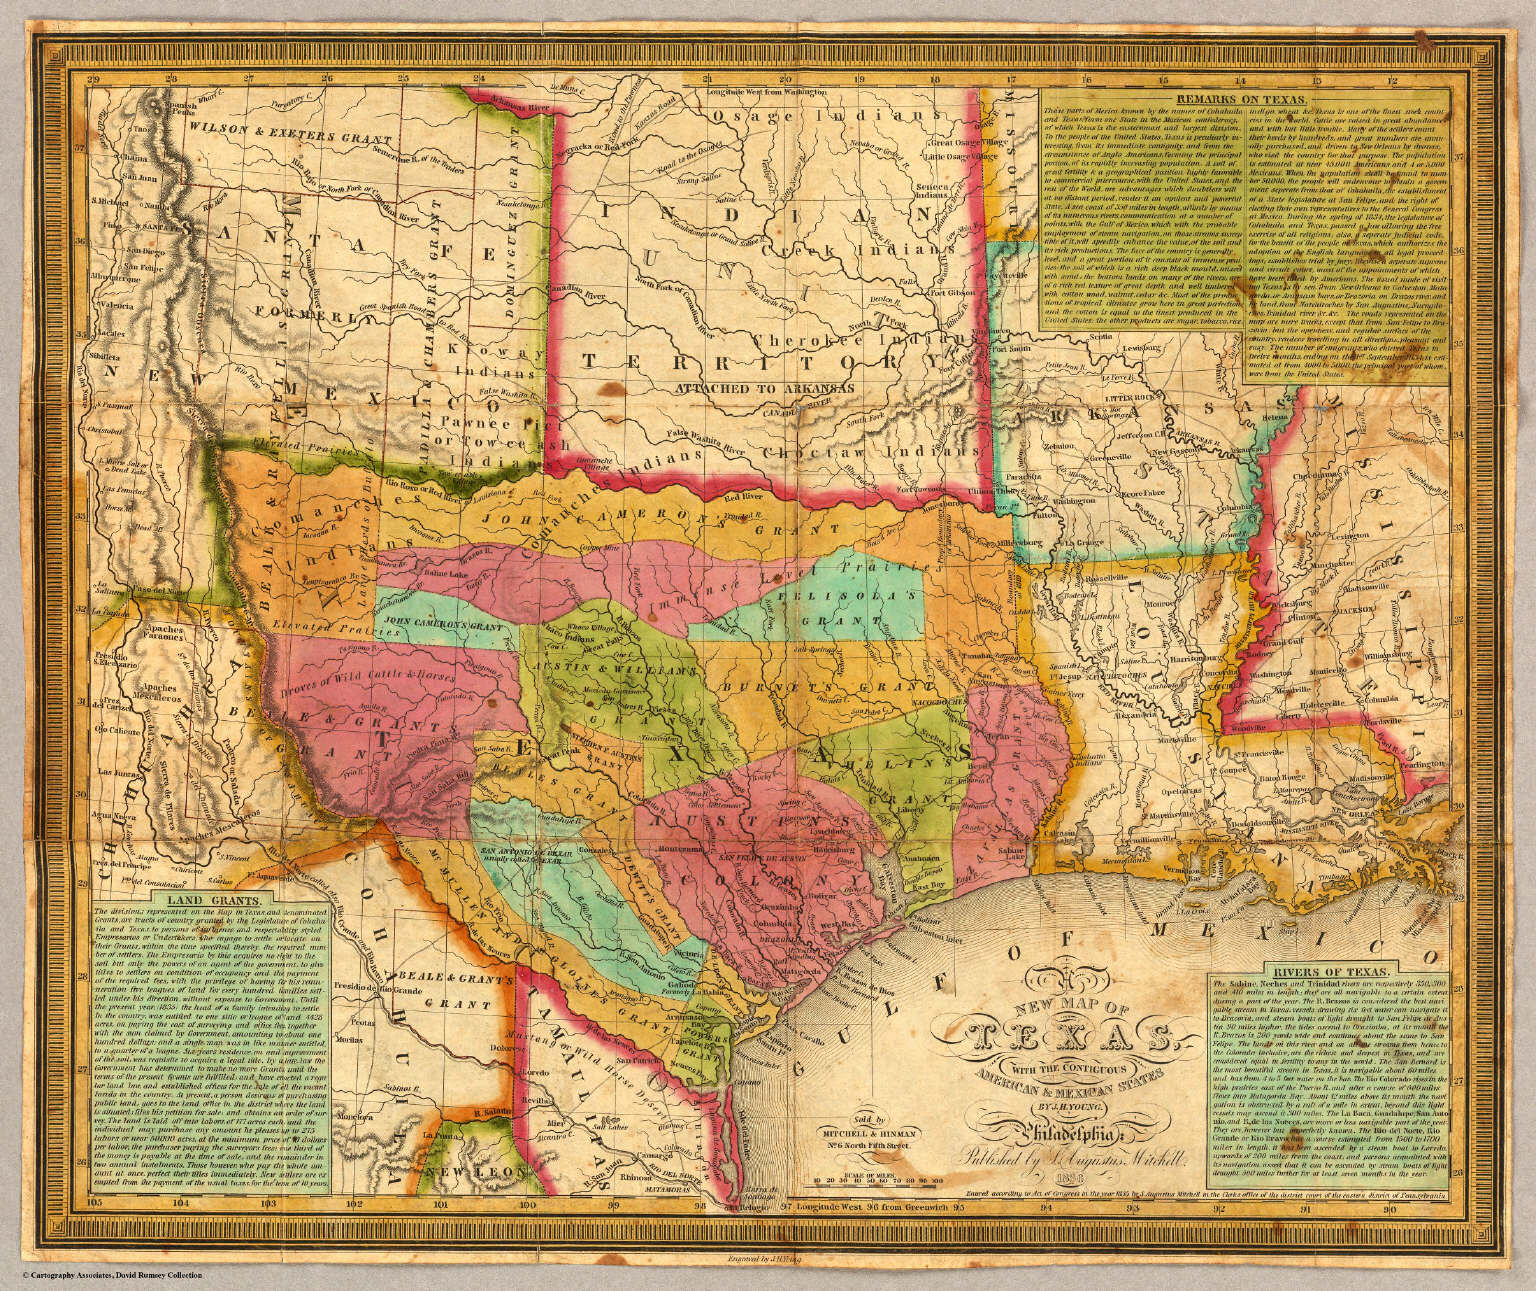 A New Map Of Texas With The Contiguous American Mexican States - Map of the texas